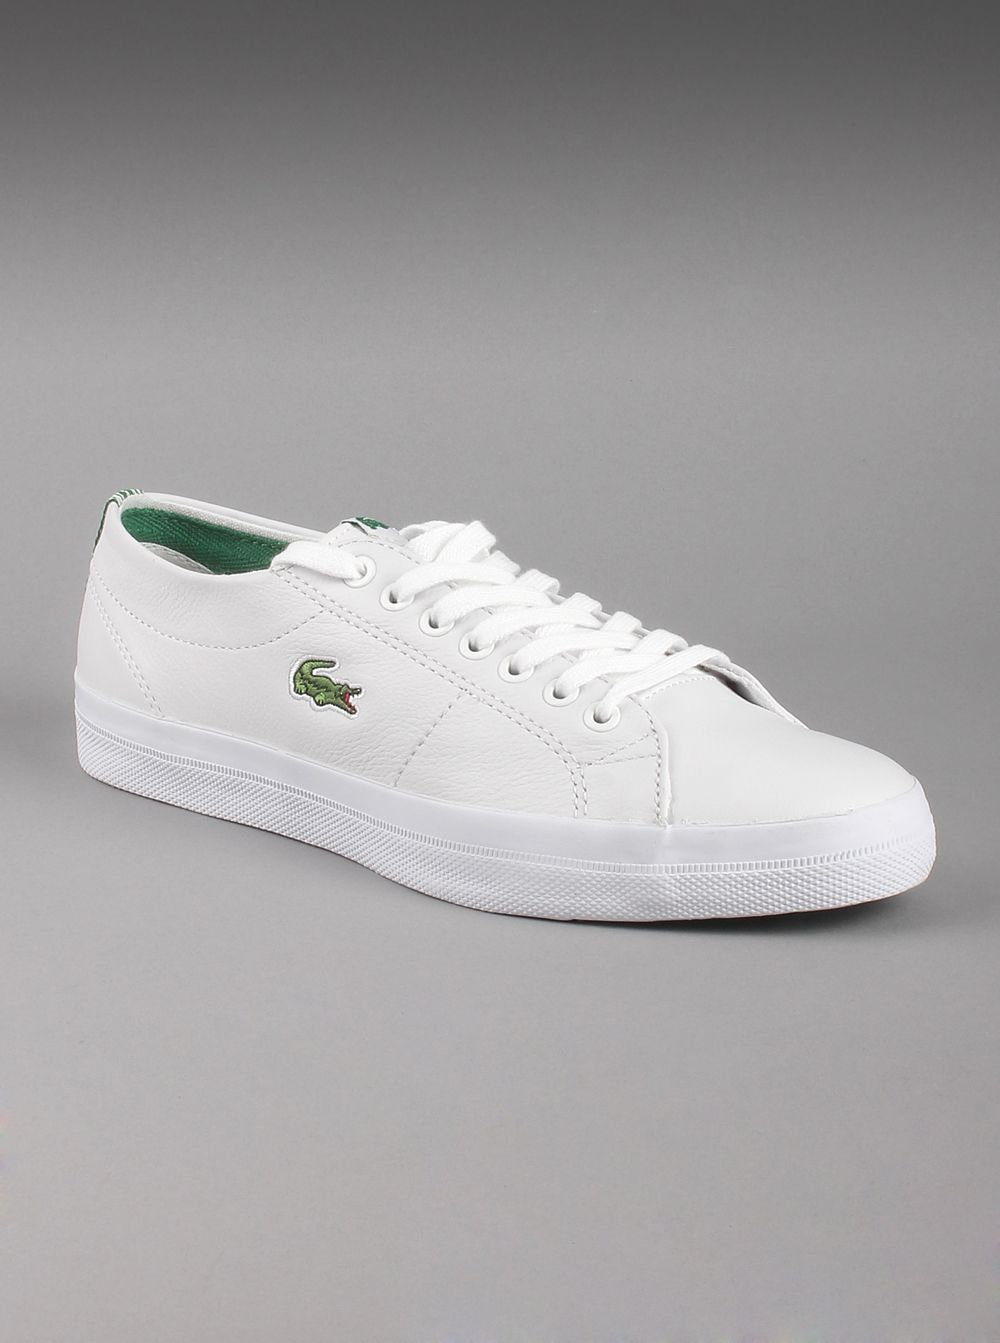 lacoste tennis shoes white cross training shoes